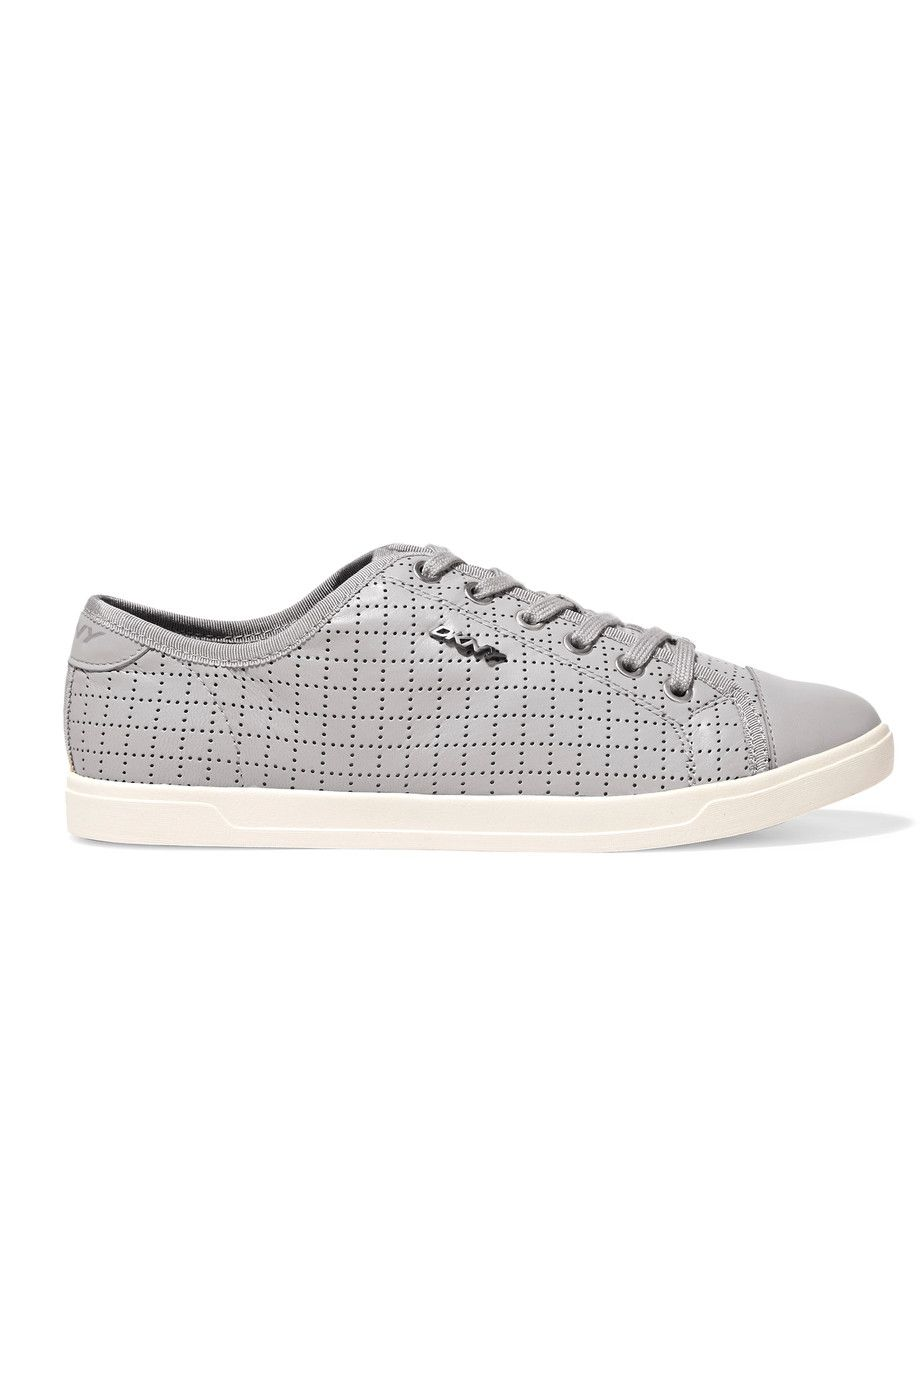 DKNY. Leather SneakersShoes ...